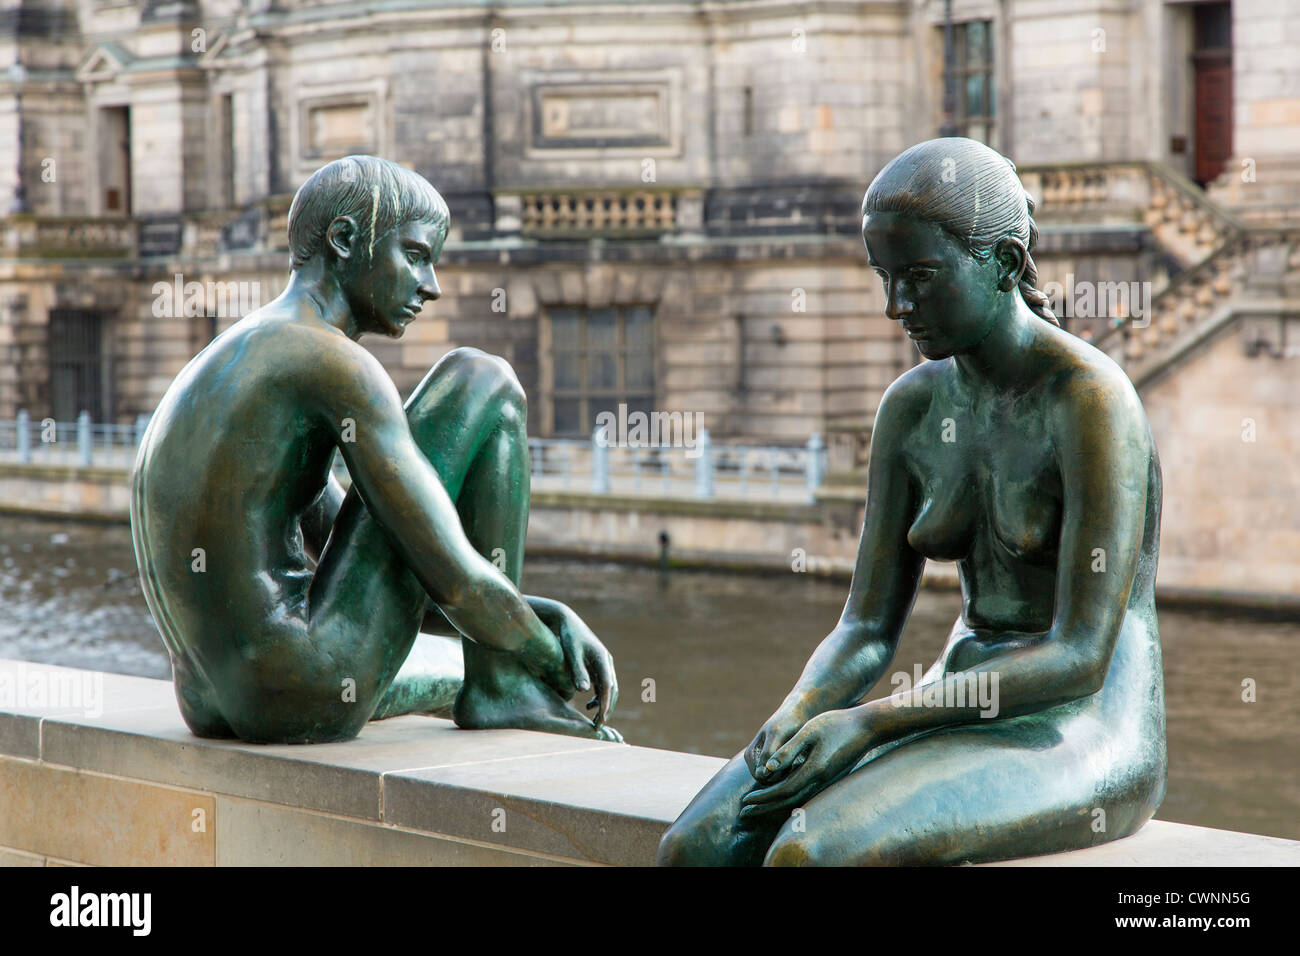 Berlin, Germany. Bronze sculpture 'Three Girls and a Boy' (Wilfred Fitzenreiter; 1988) by the River Spree - Stock Image